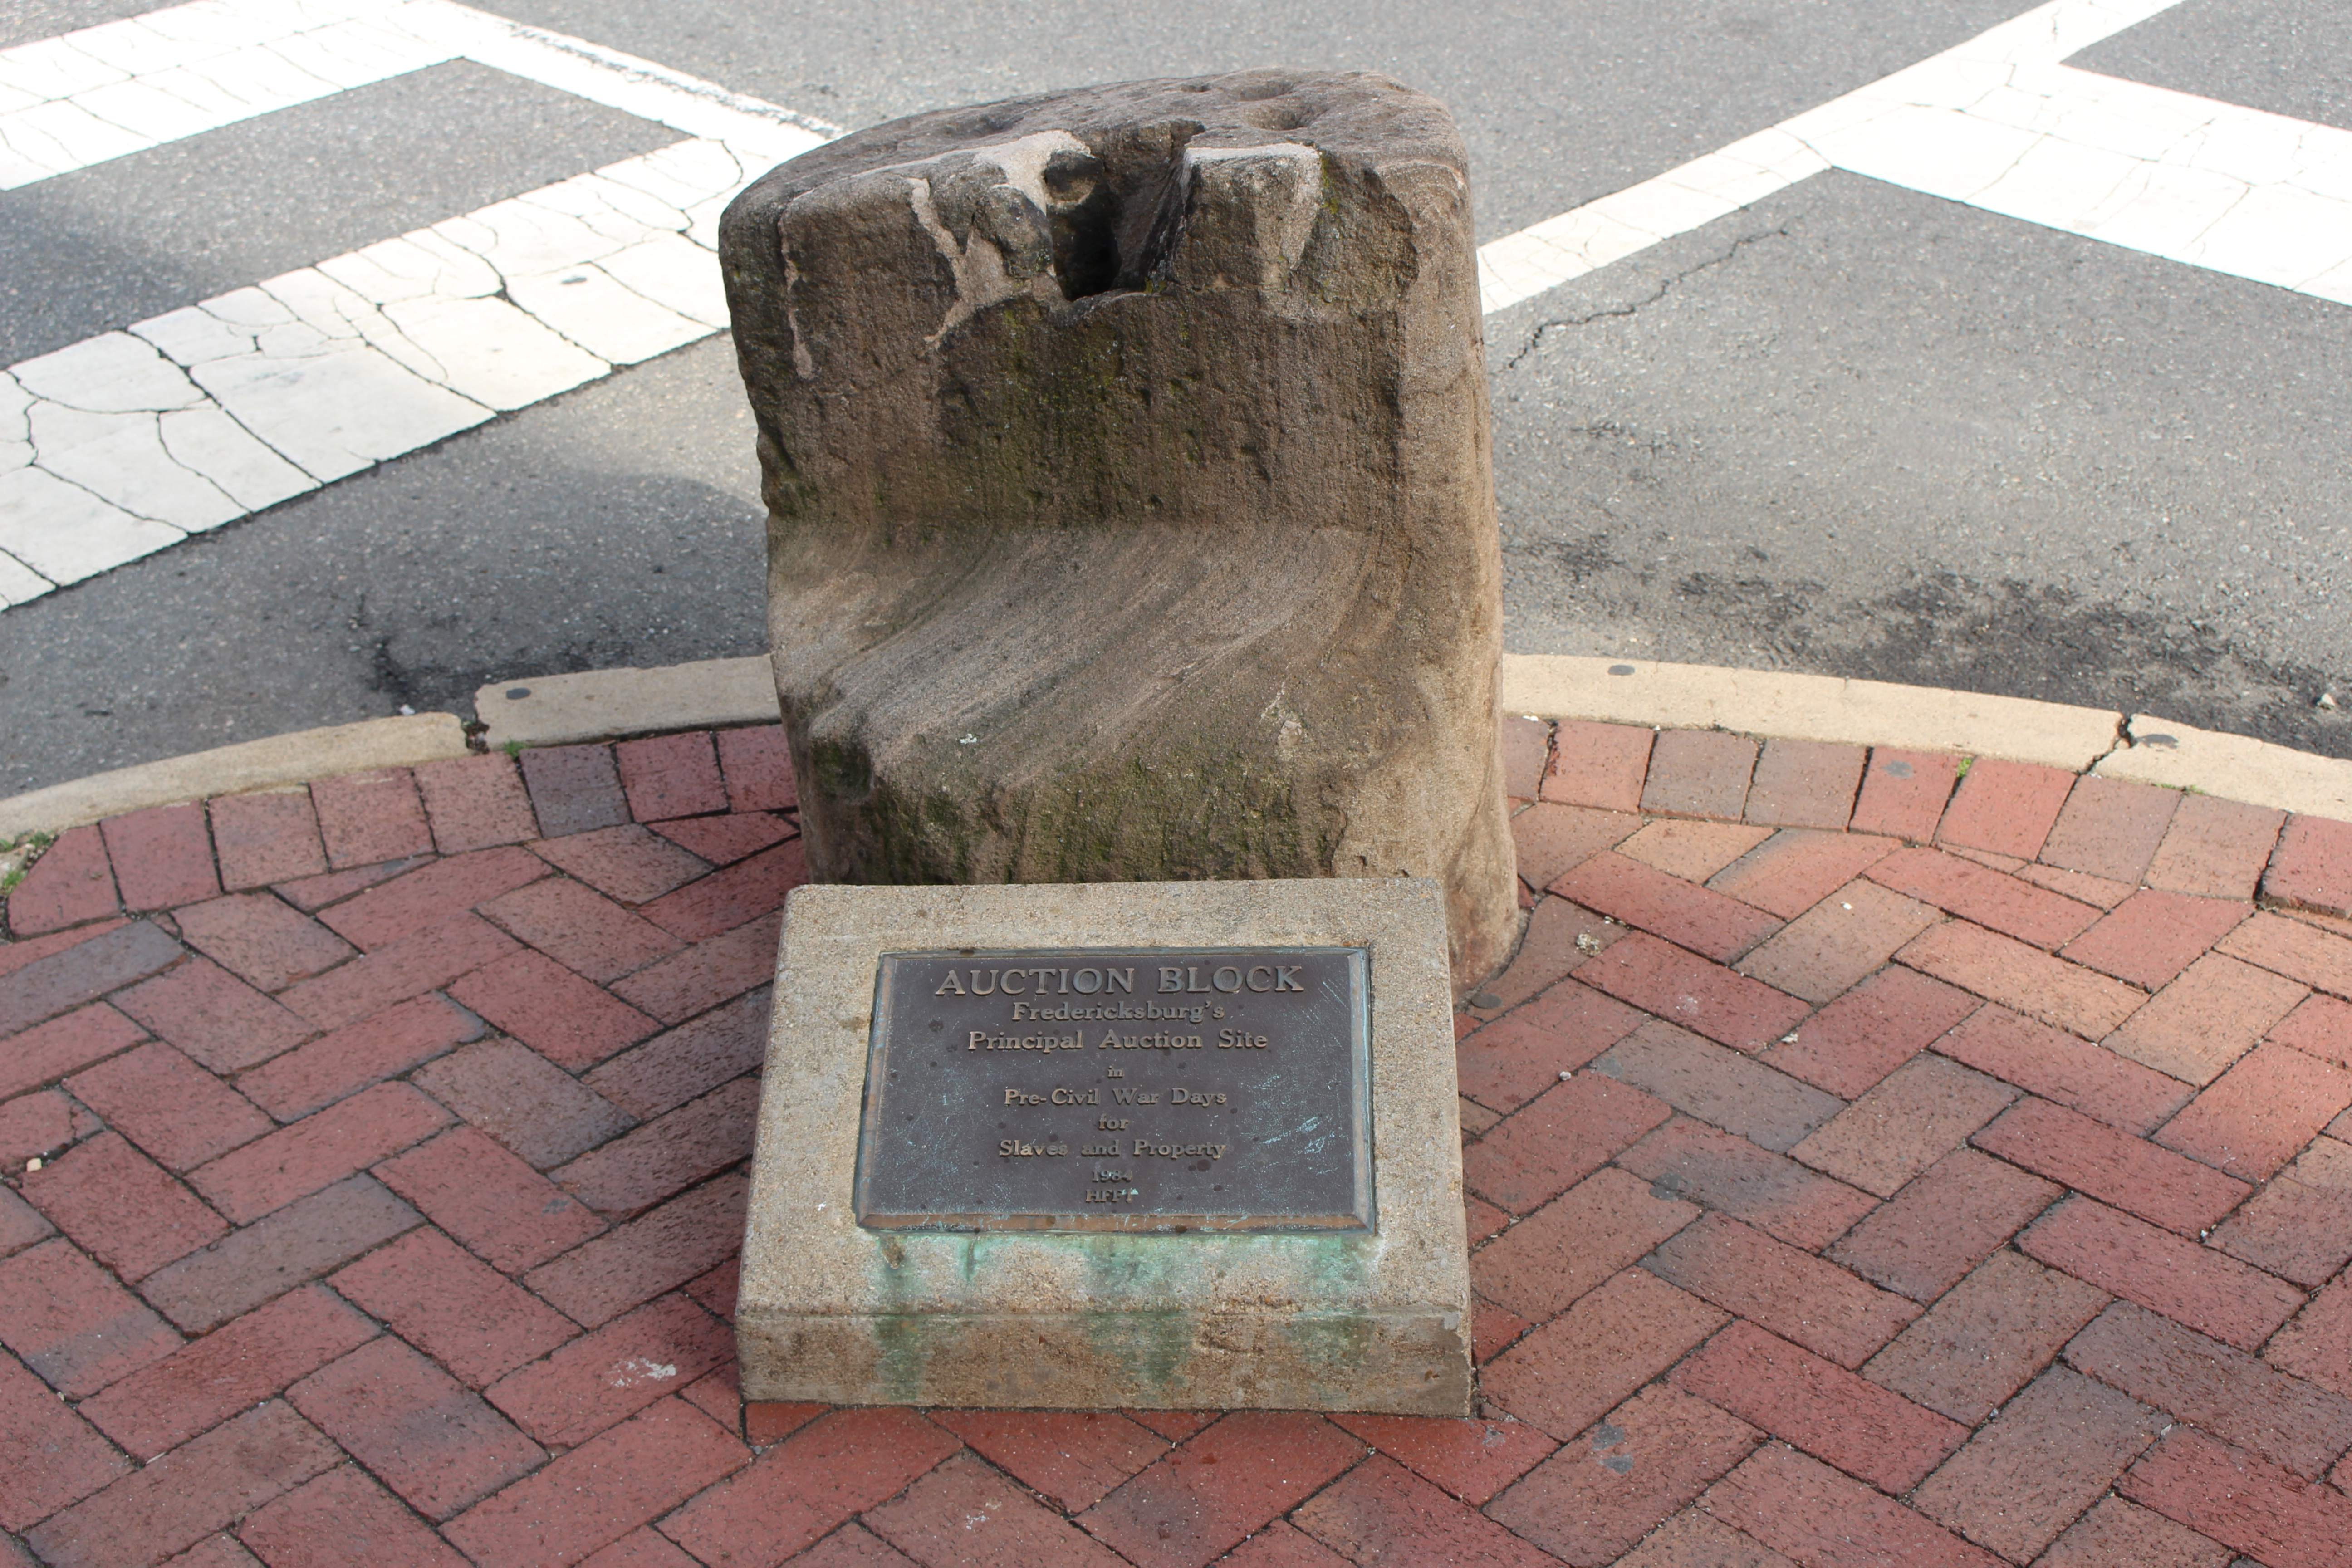 Pictured here is the slave auction block off of Williams Street